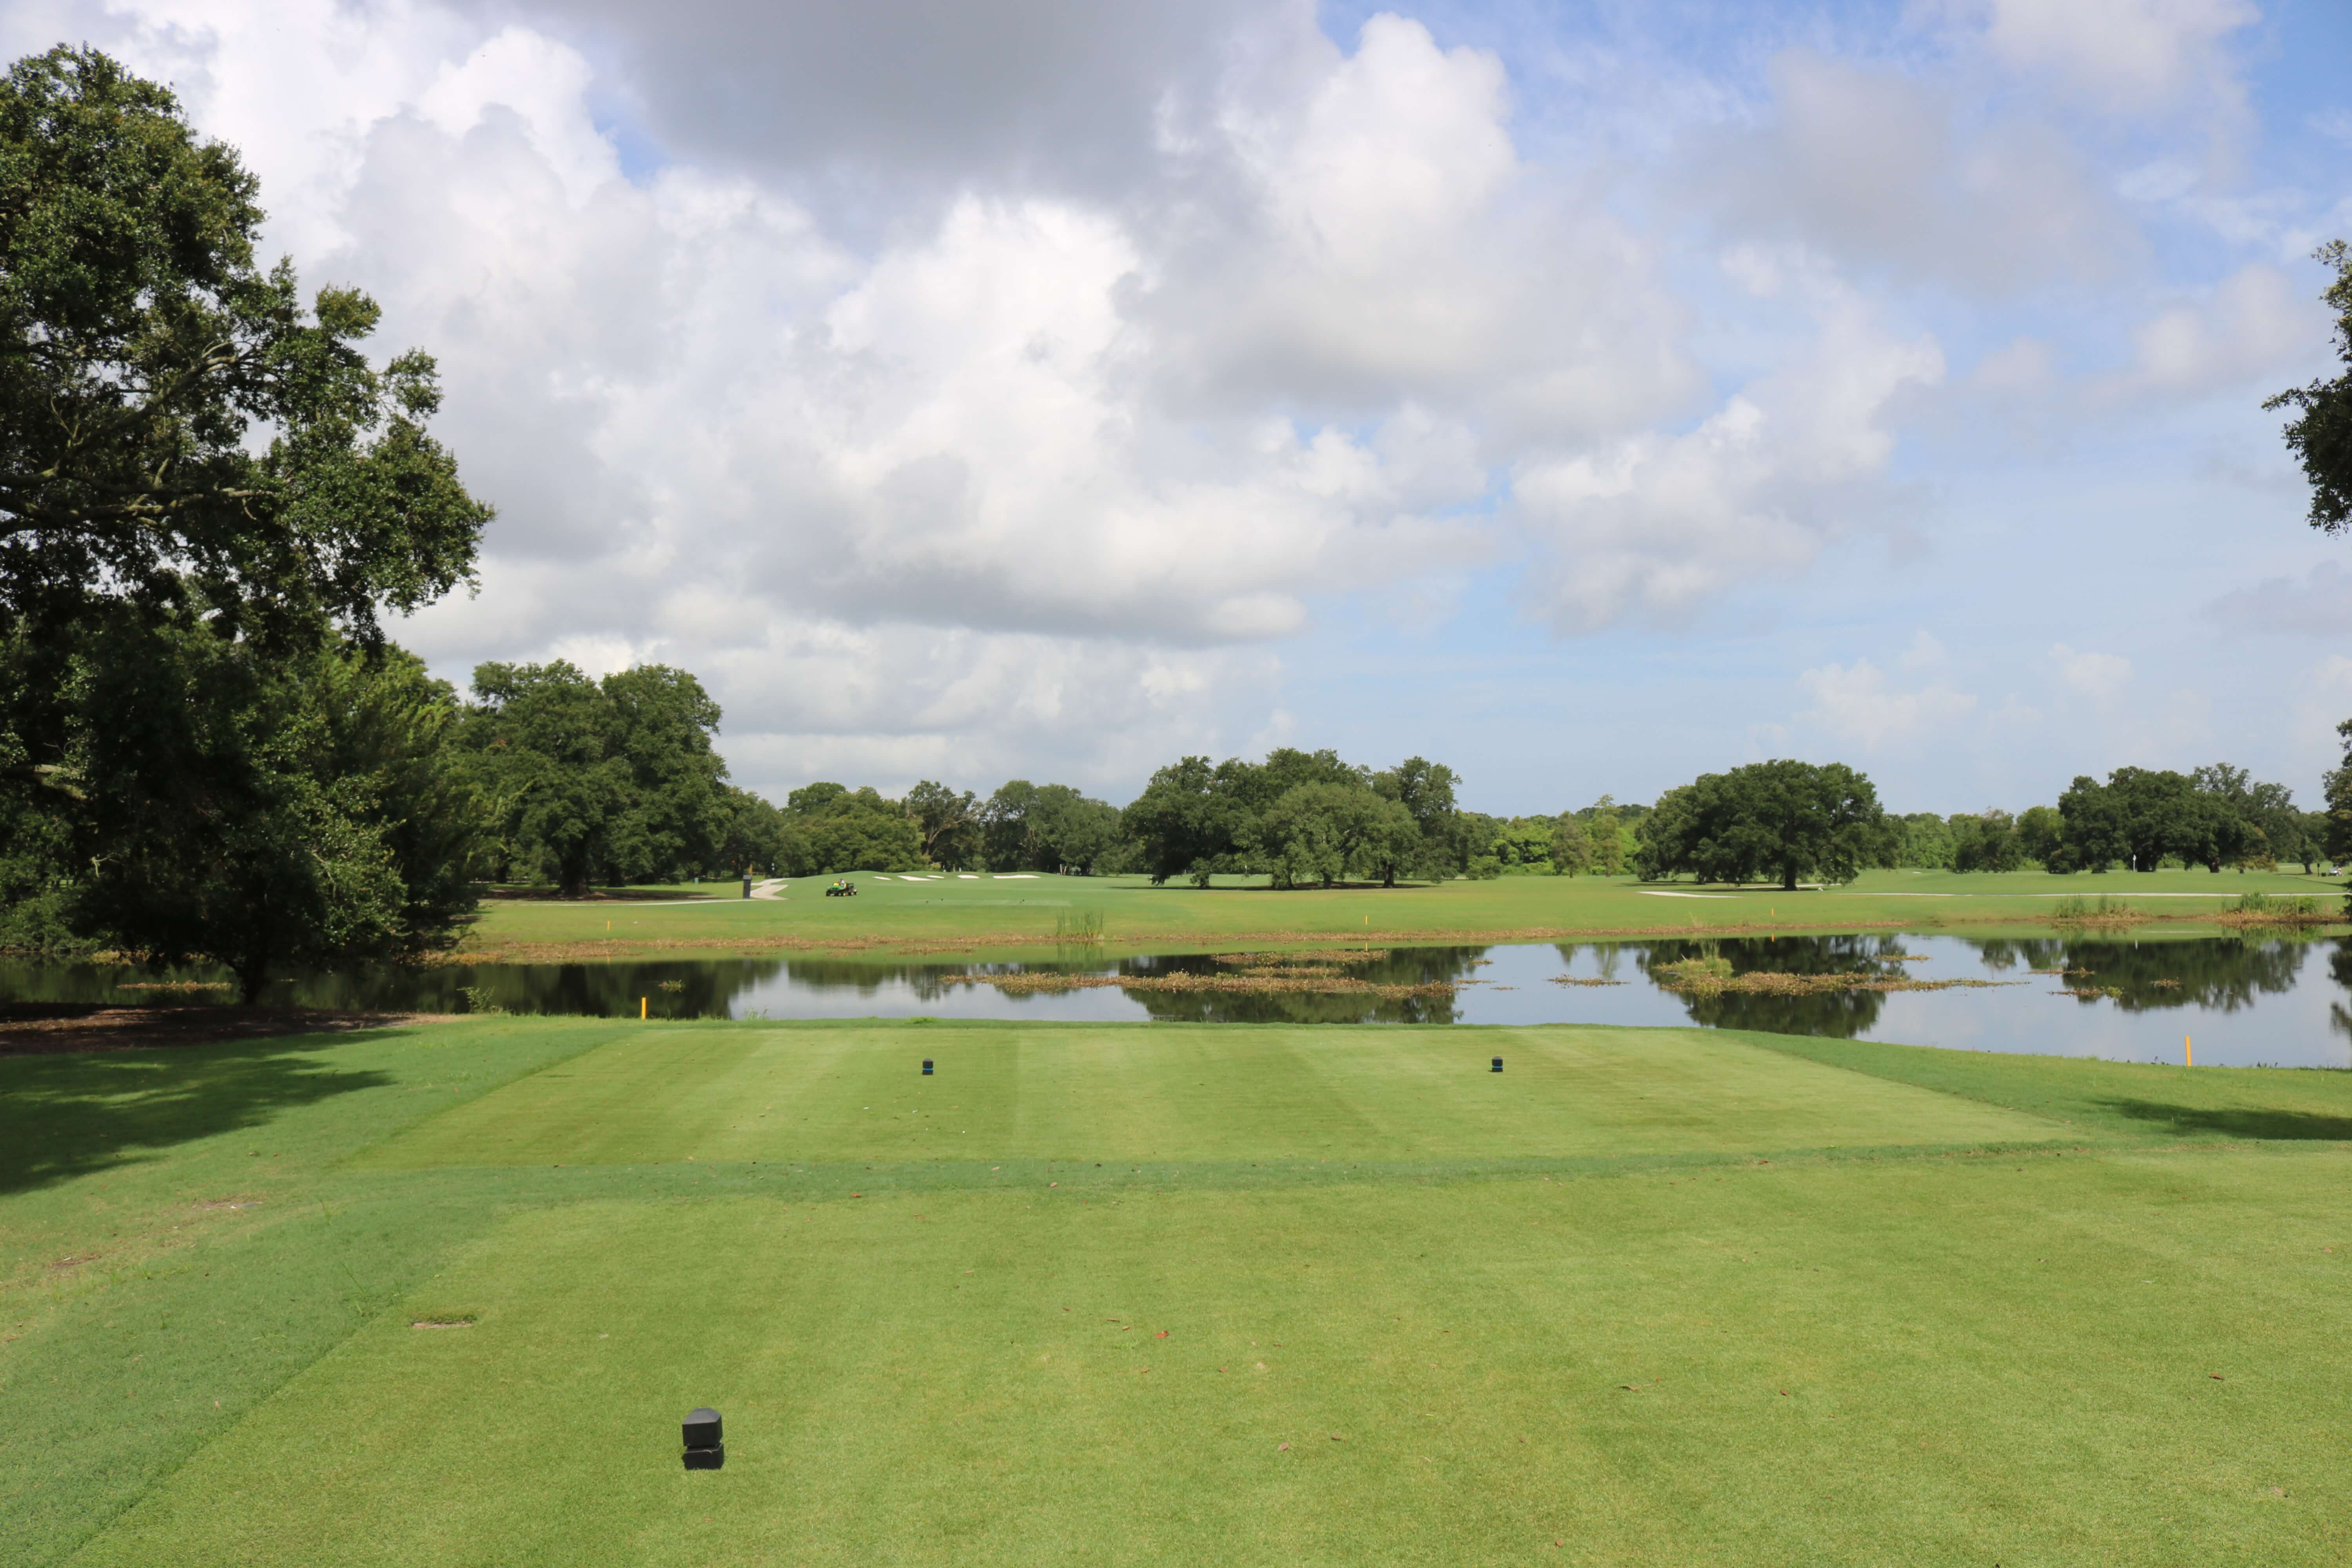 A view of green turf grass and trees that lead to a large pond in the middle of a golf course